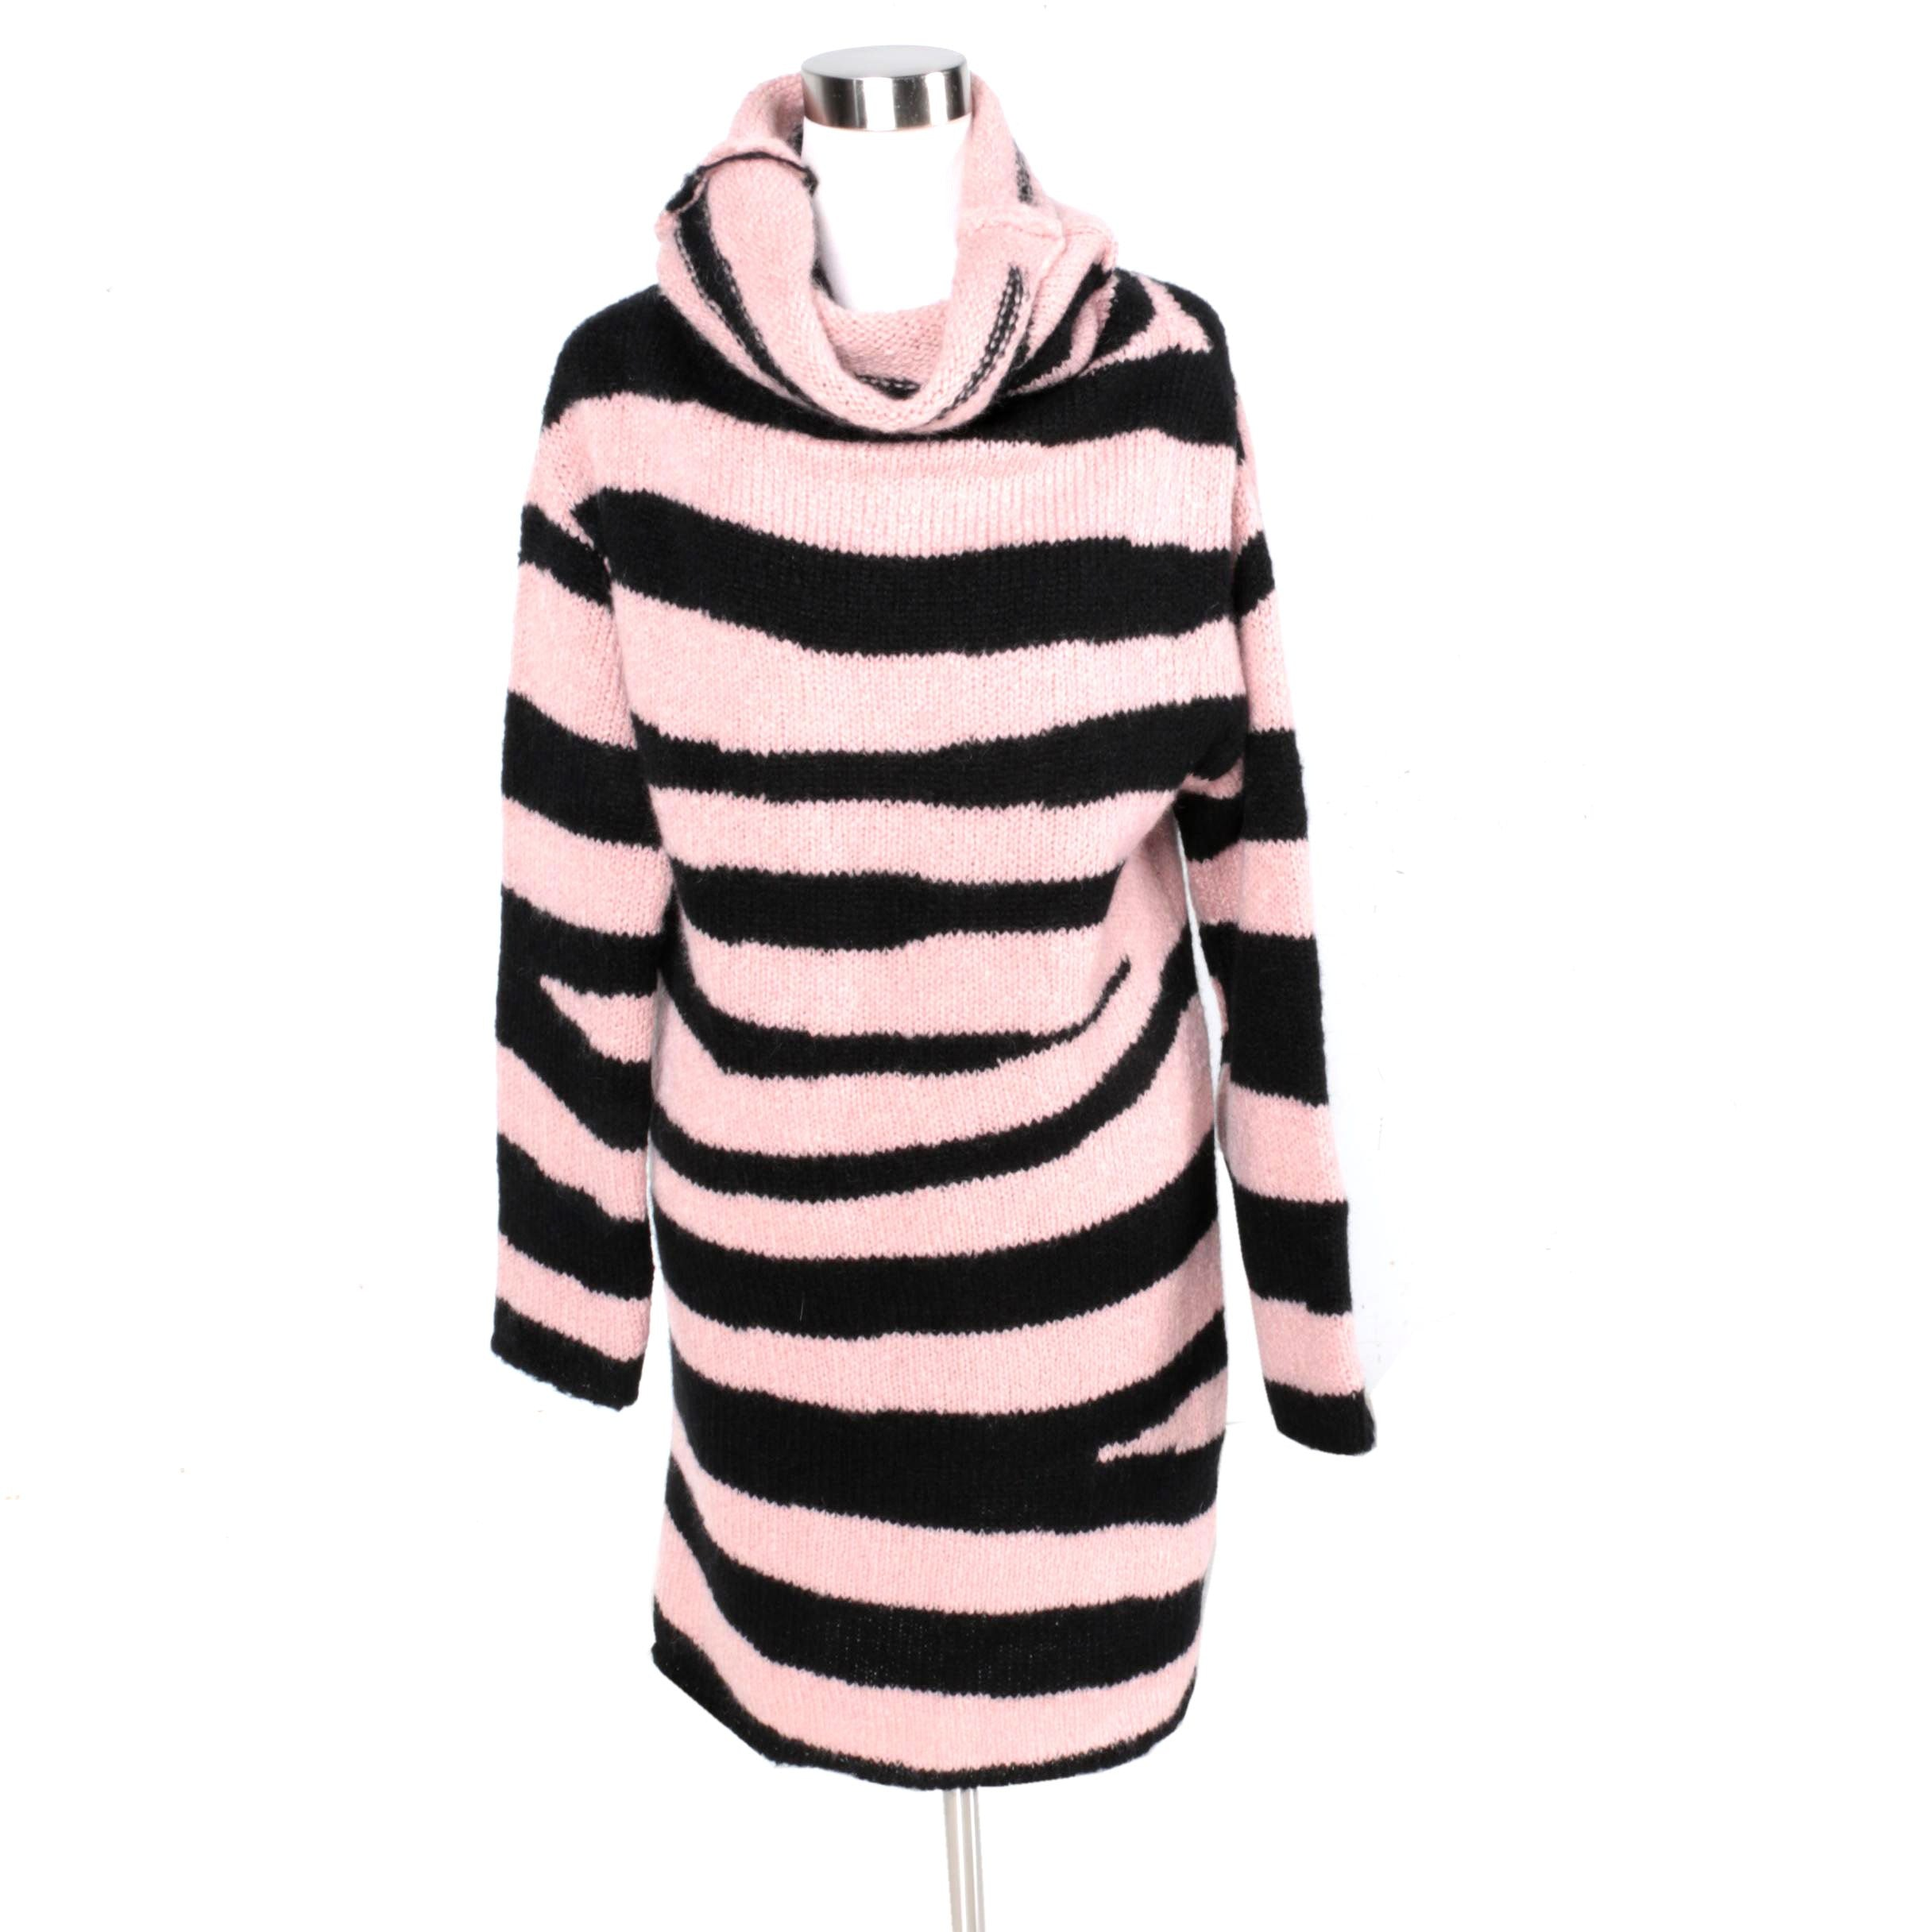 McQ Alexander McQueen Pink and Black Sweater dress